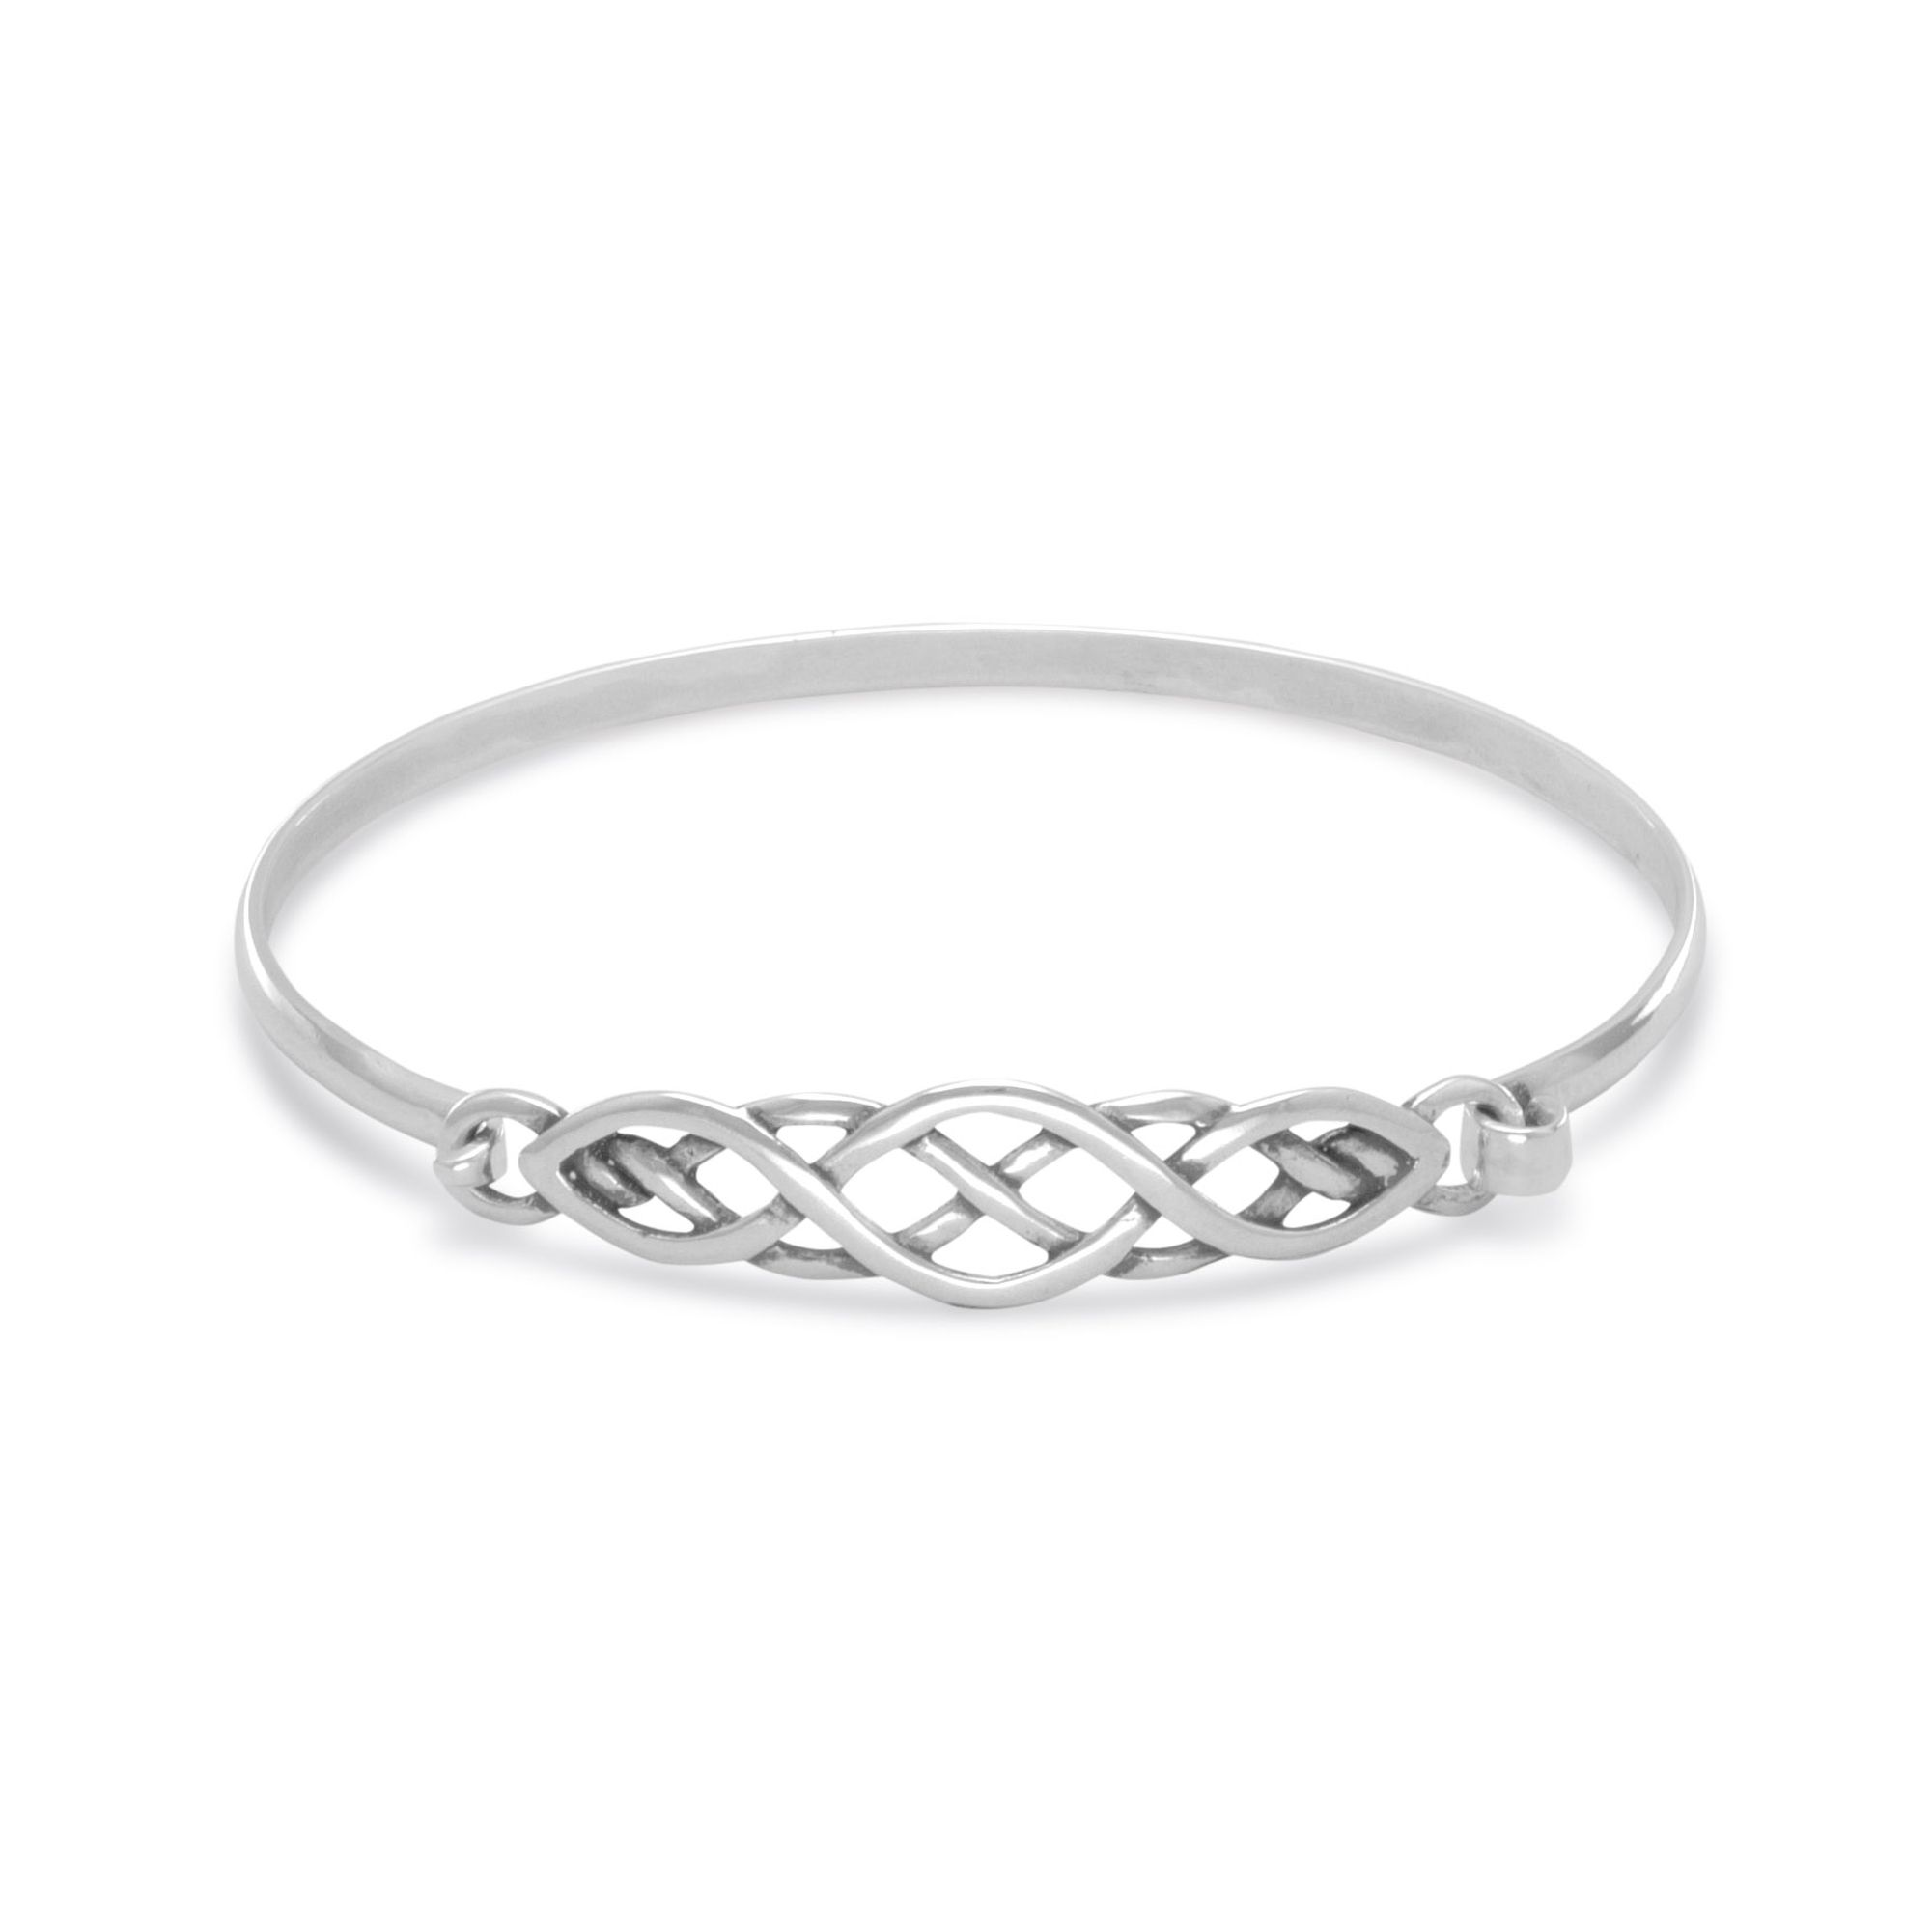 knot cuff bangle wrap unique buckle gift silver stitch white party from leather bracelets product genuine magnet bangles male design shape men line